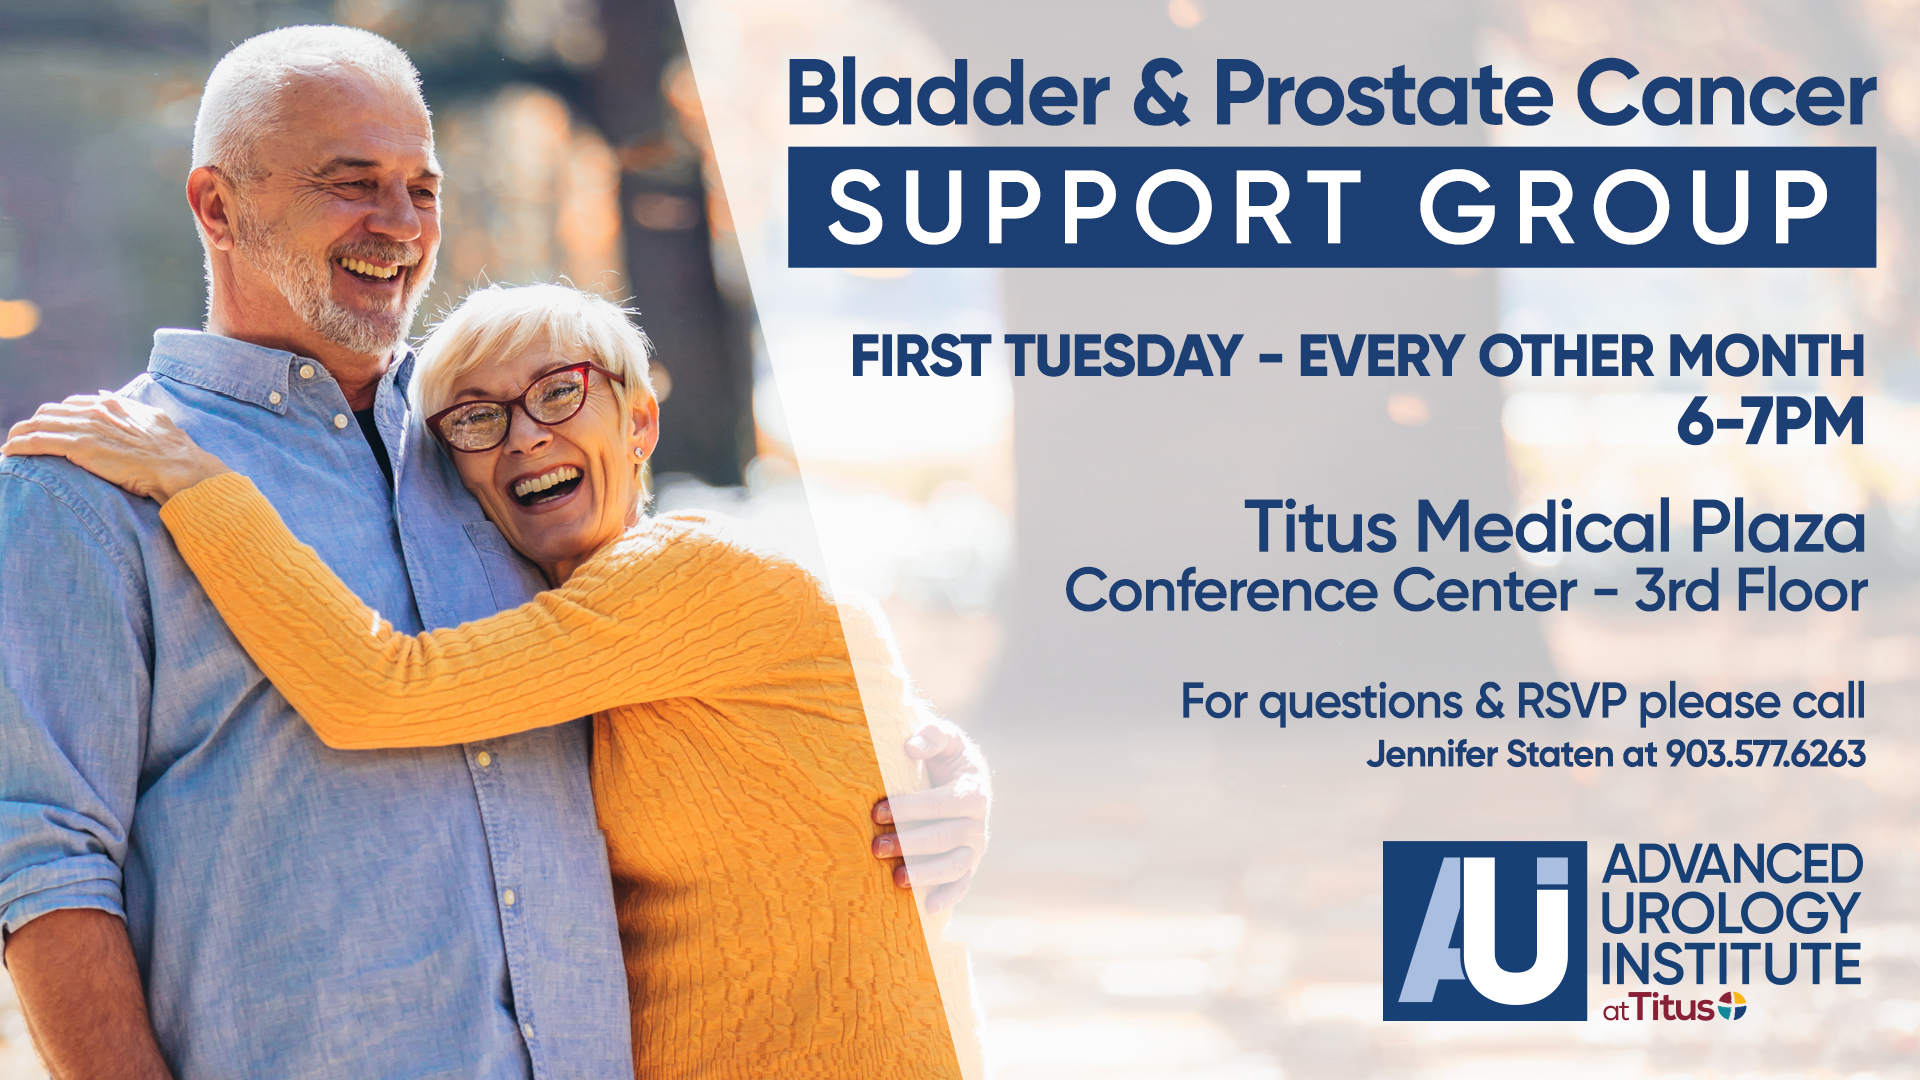 Bladder & Prostate Cancer Support Group